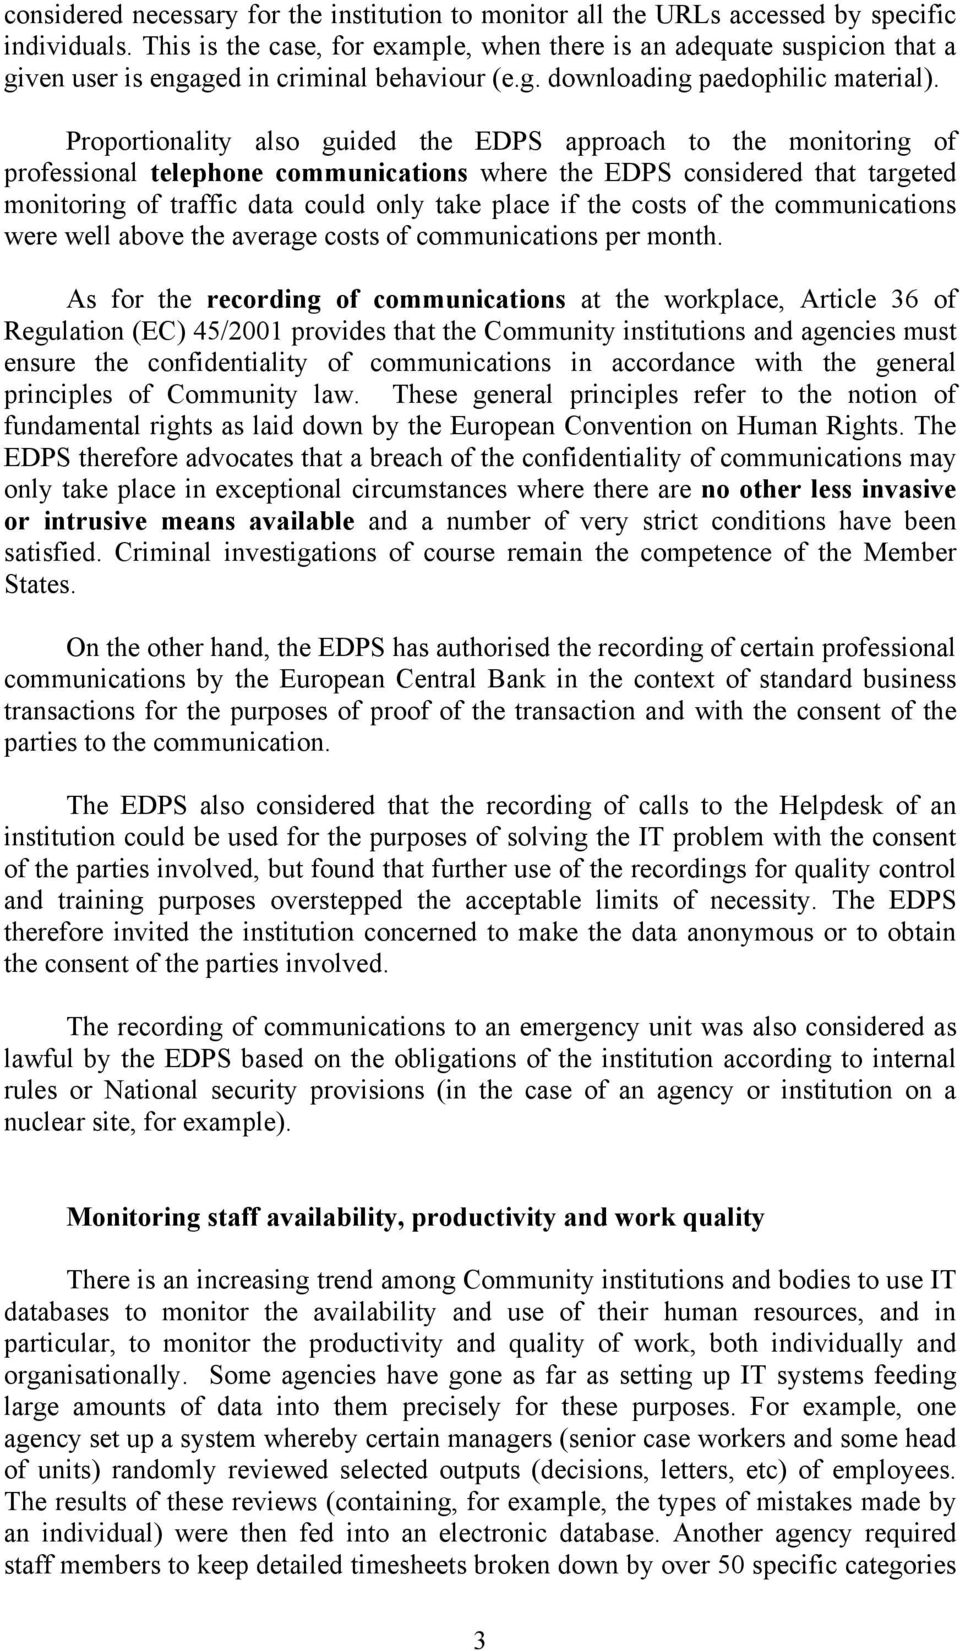 Proportionality also guided the EDPS approach to the monitoring of professional telephone communications where the EDPS considered that targeted monitoring of traffic data could only take place if